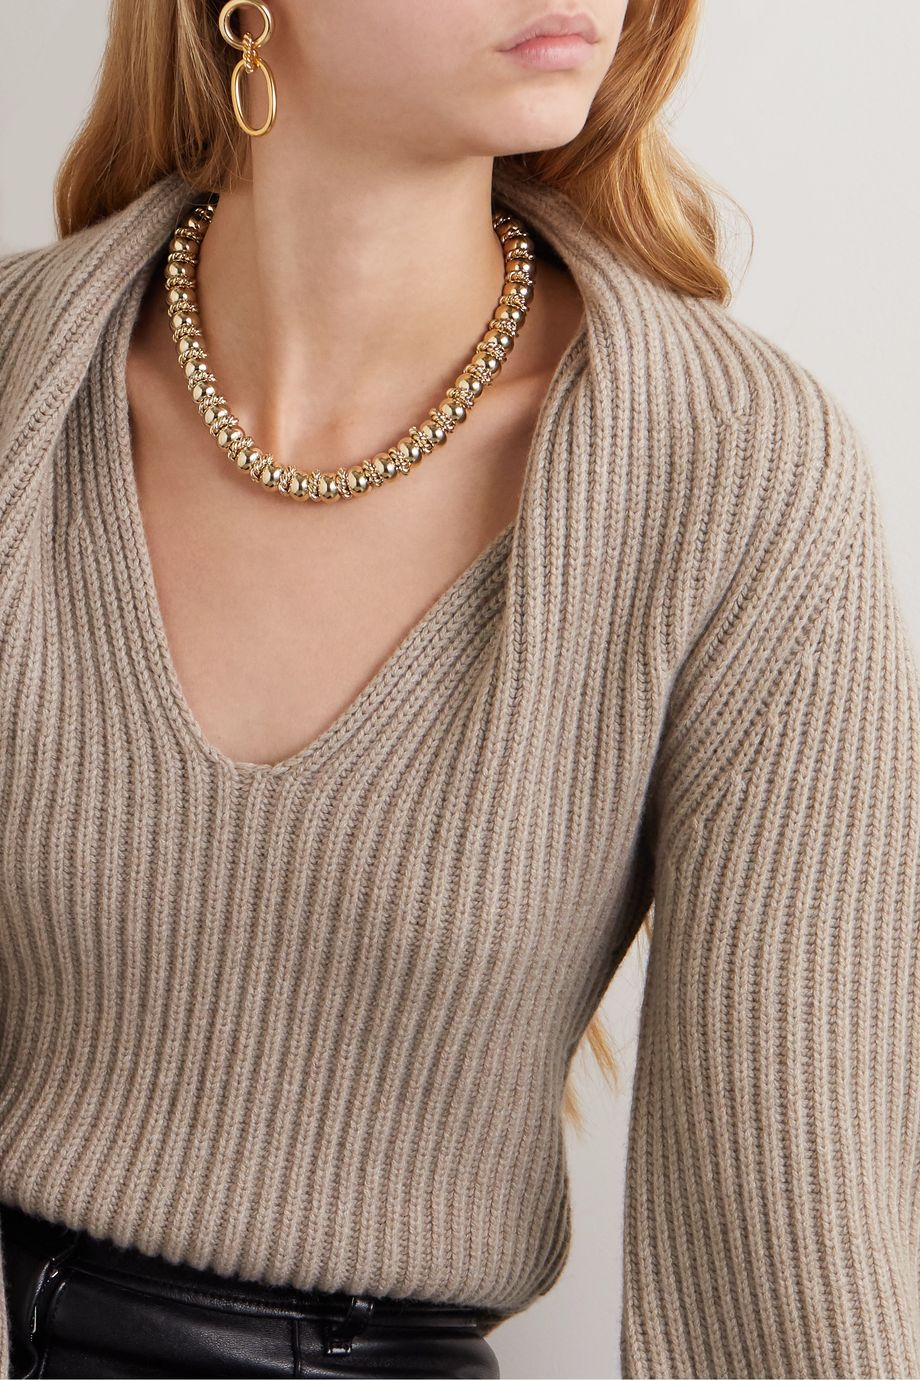 Laura Lombardi + NET SUSTAIN Serena gold-plated necklace